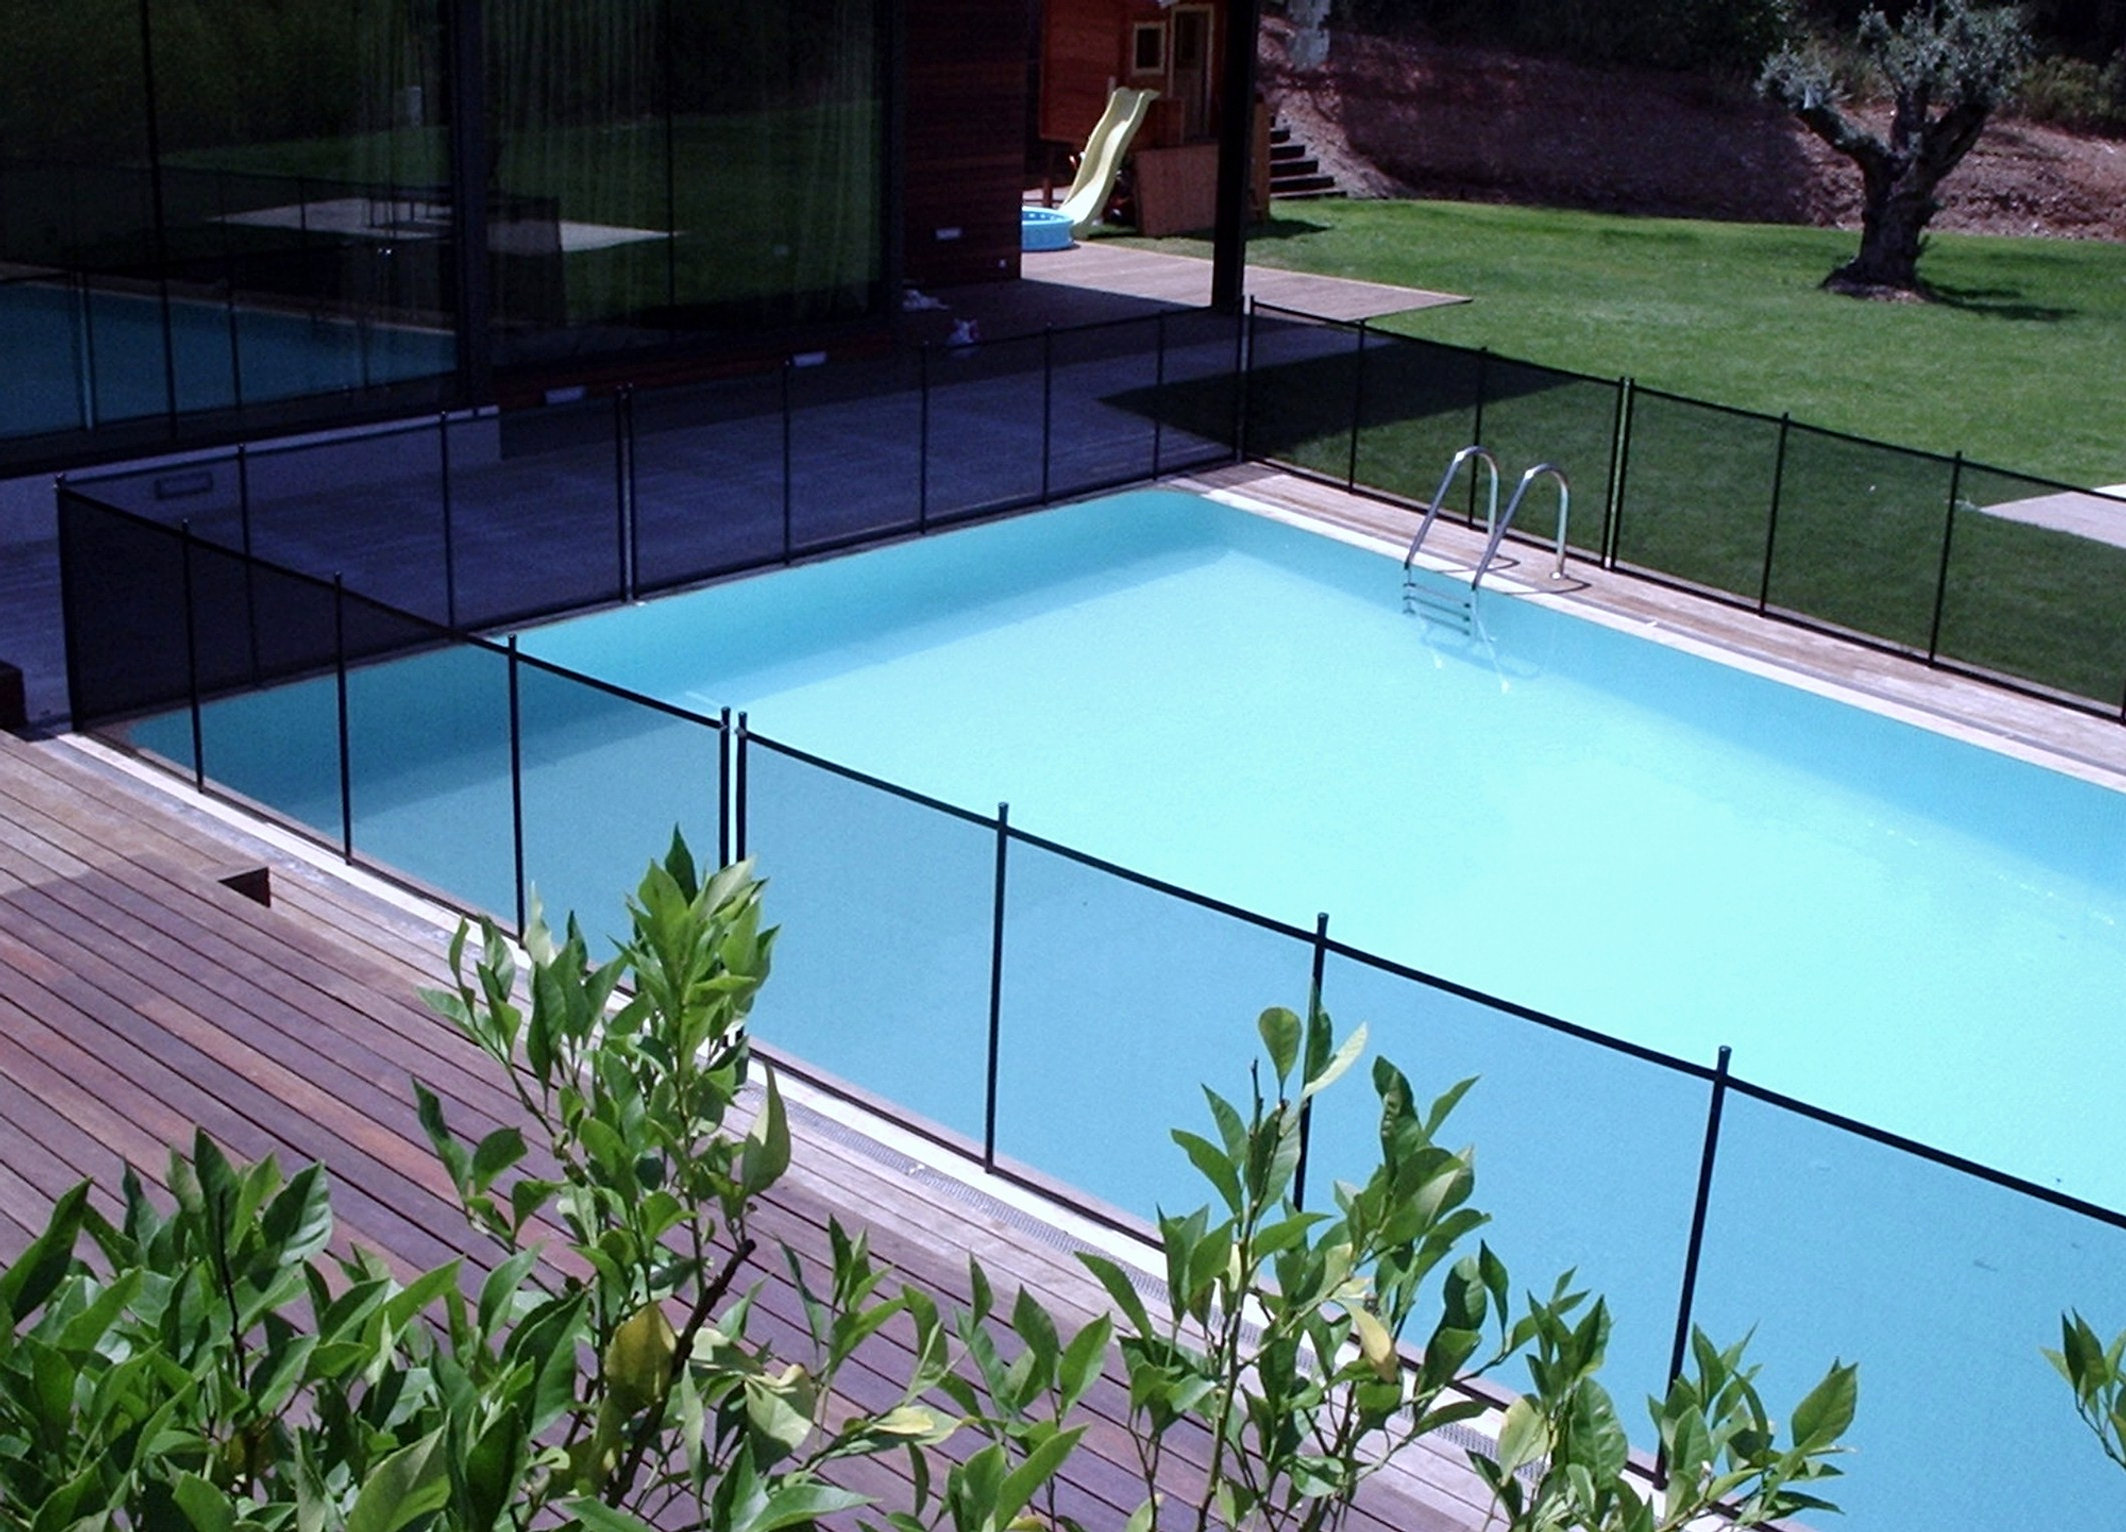 Babysecur vallas para piscinas safety pool fence valla - Valla para piscina ...